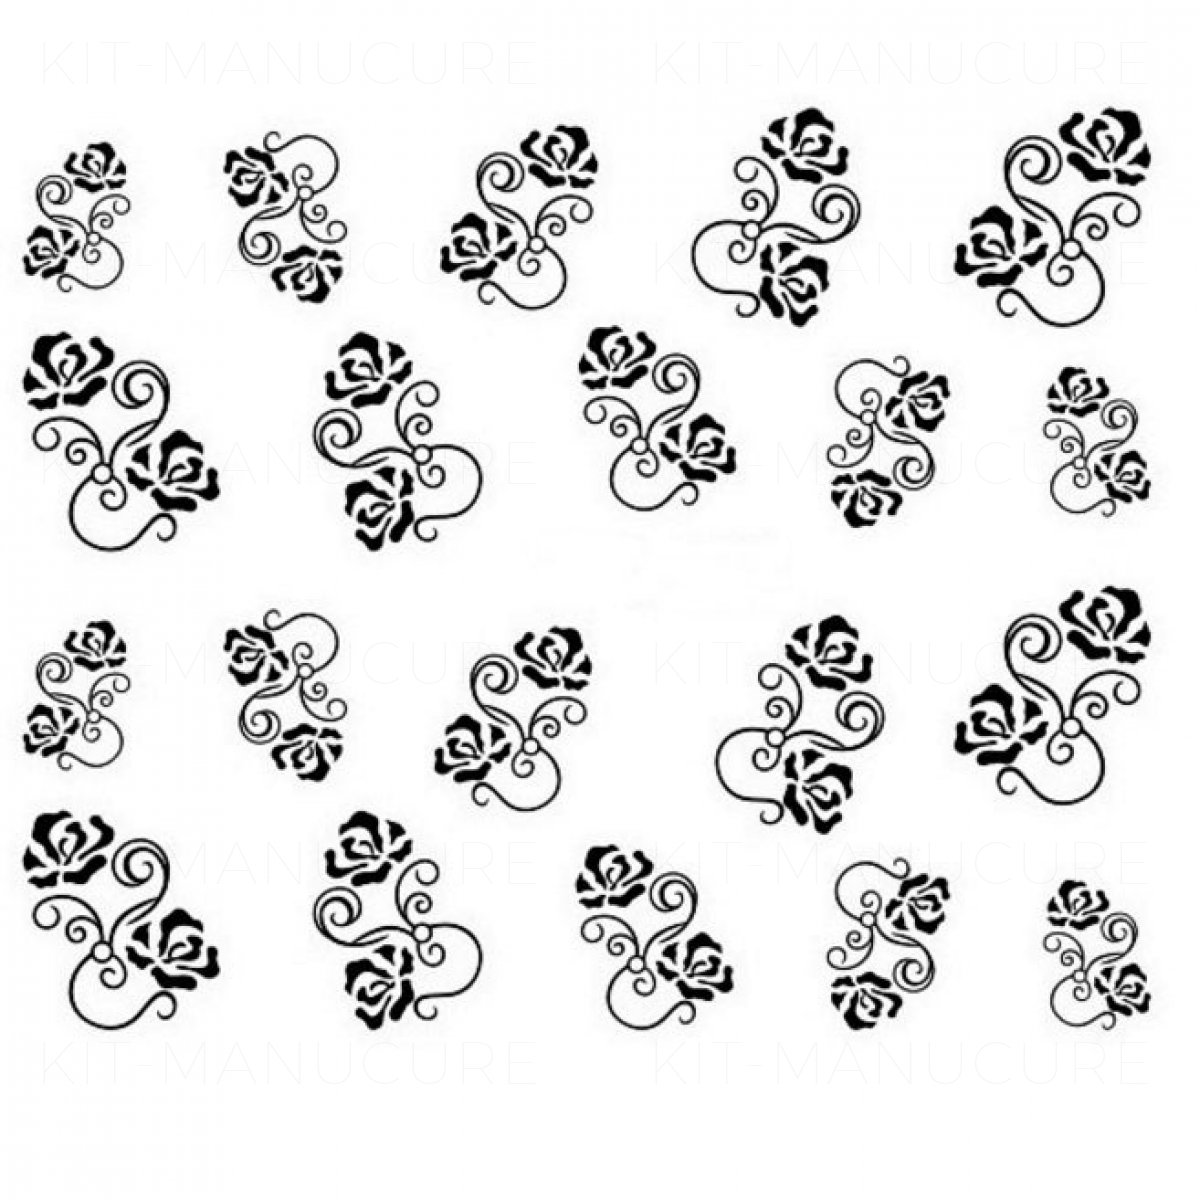 https://www.kit-manucure.com/1210-thickbox_default/water-decals-arabesques-et-roses-stylisées-noir.jpg